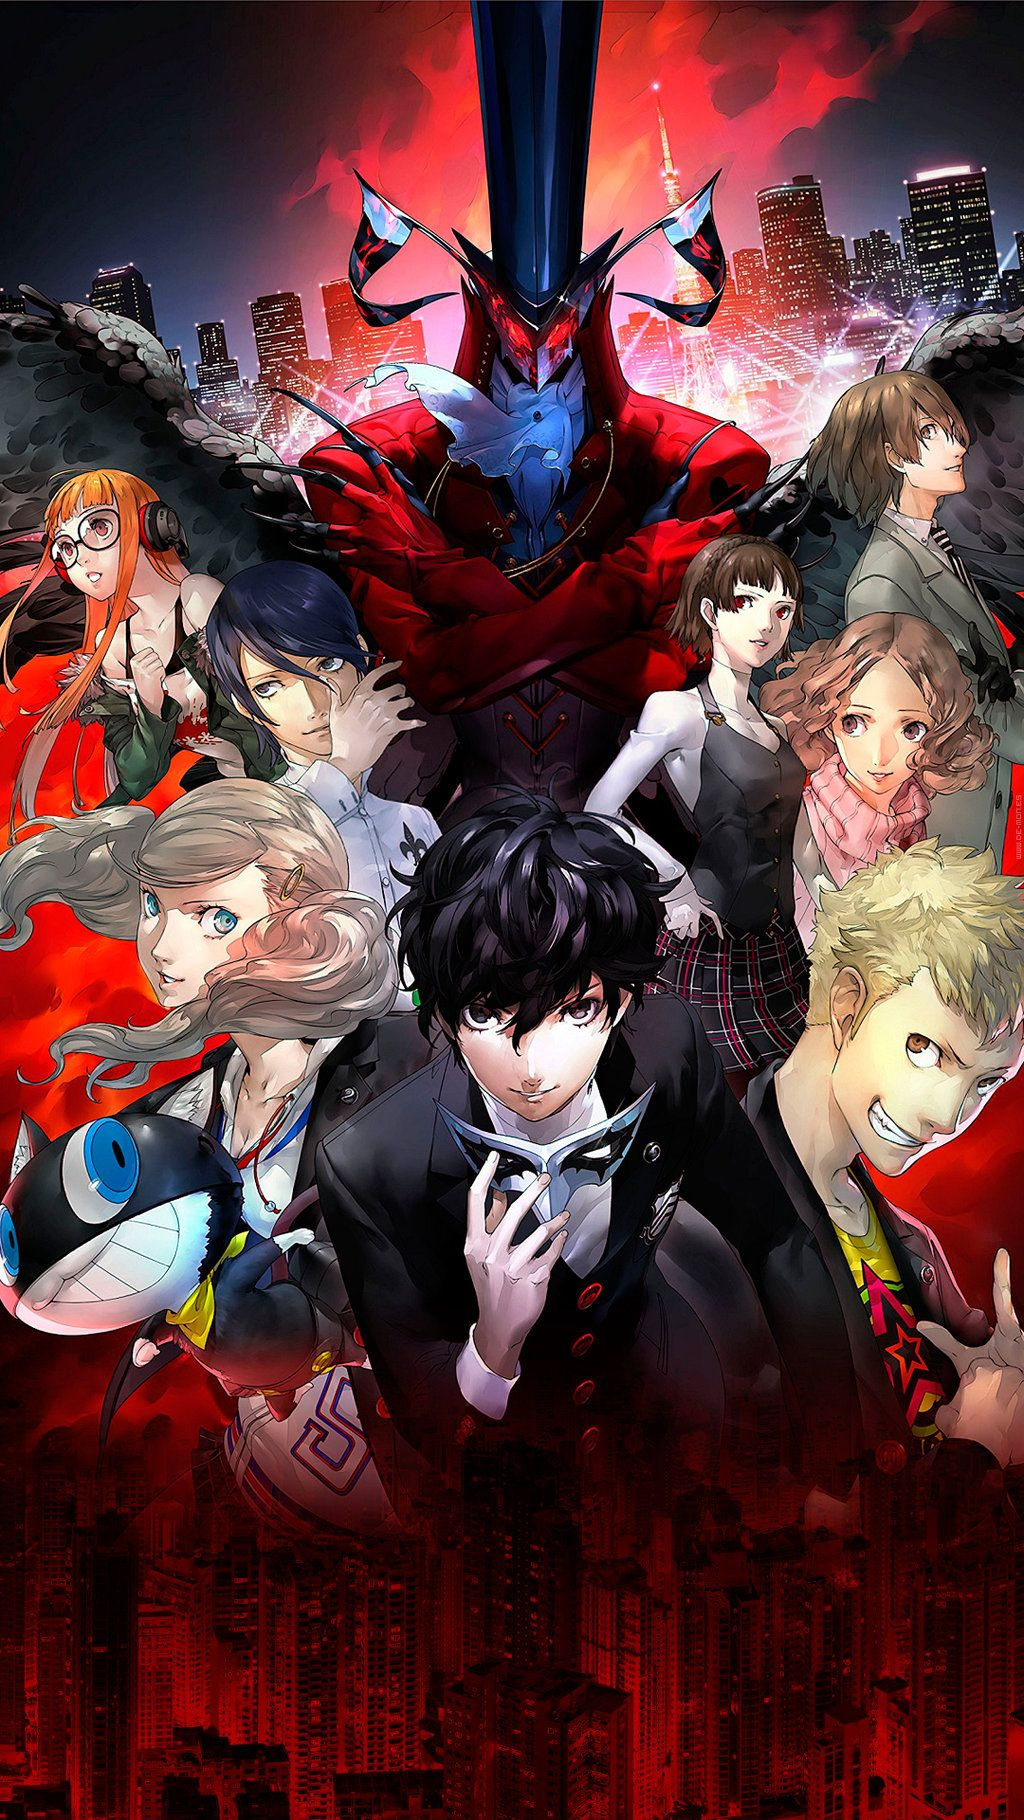 Related image Persona 5 anime